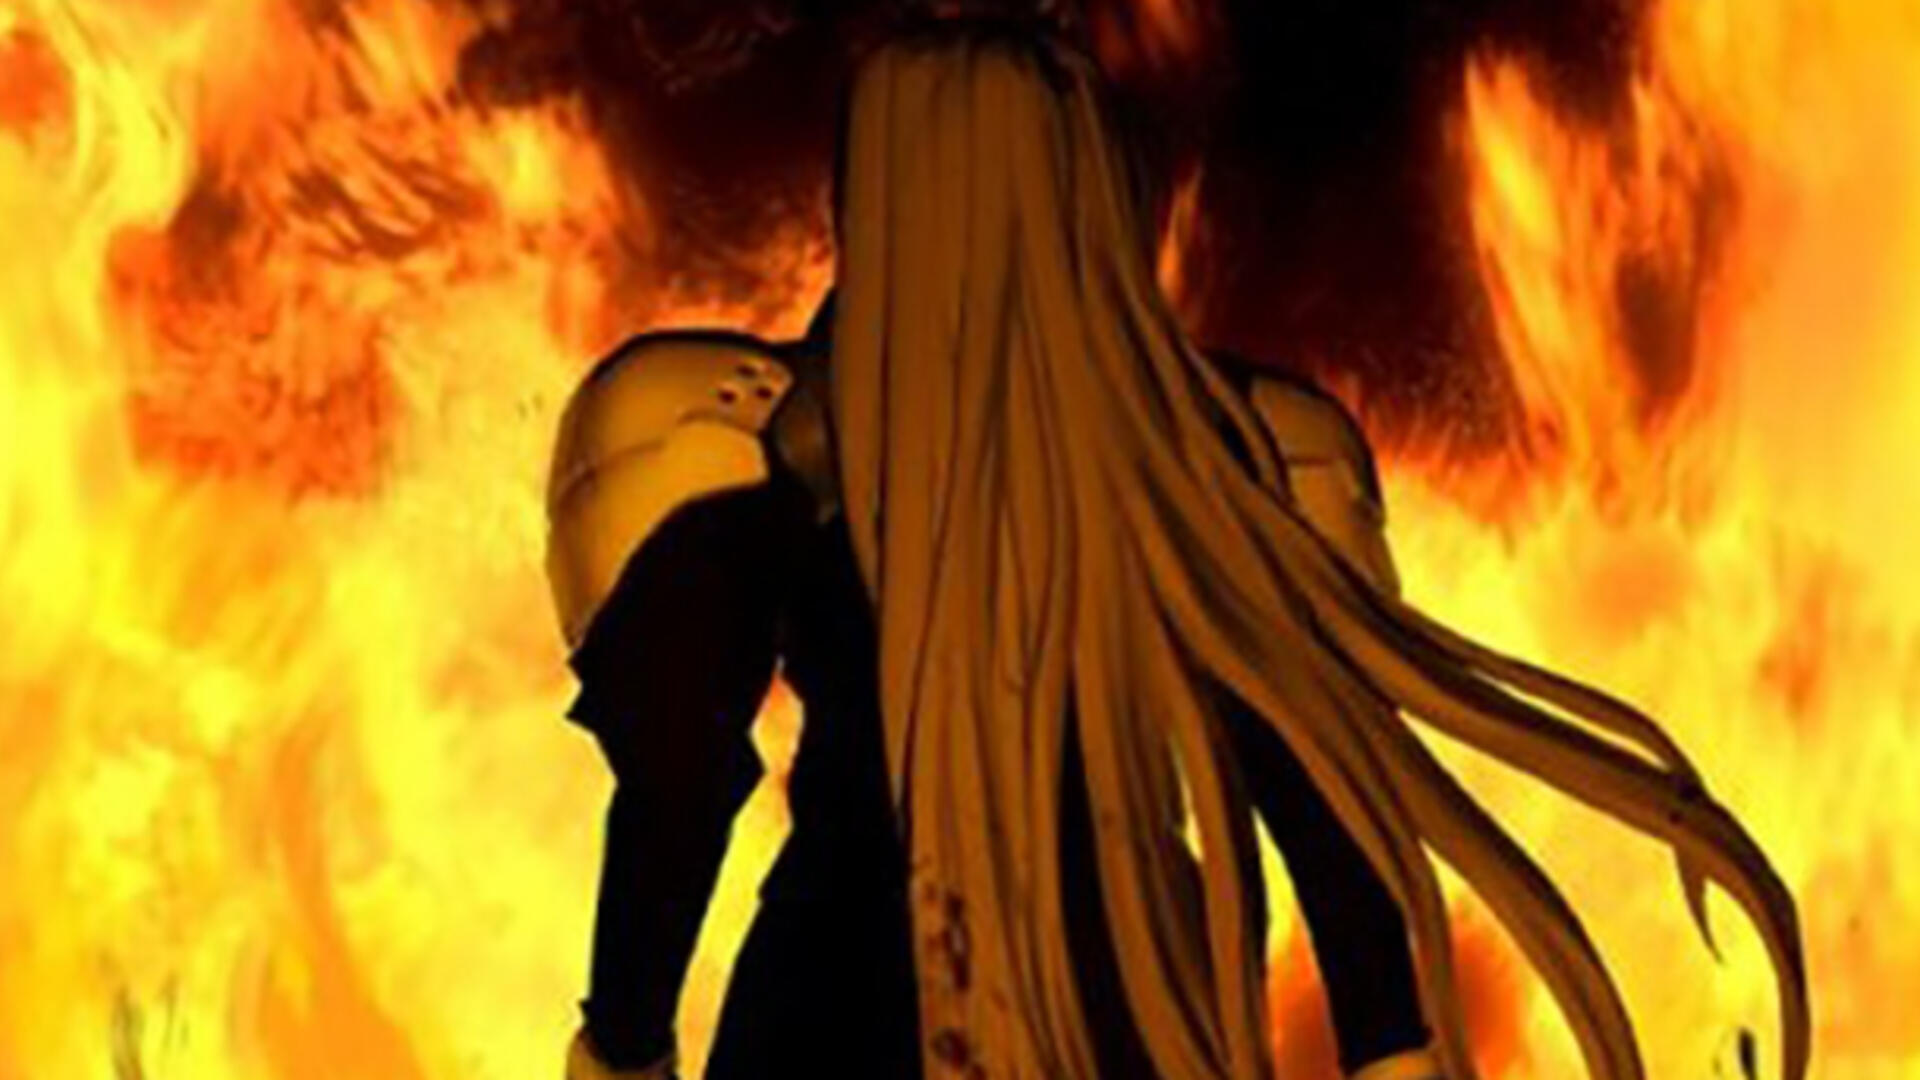 Final Fantasy VII Deep Dive, Part 4: Sephiroth Skewered Our Expectations for RPG Villains... and Our Girlfriend, Too